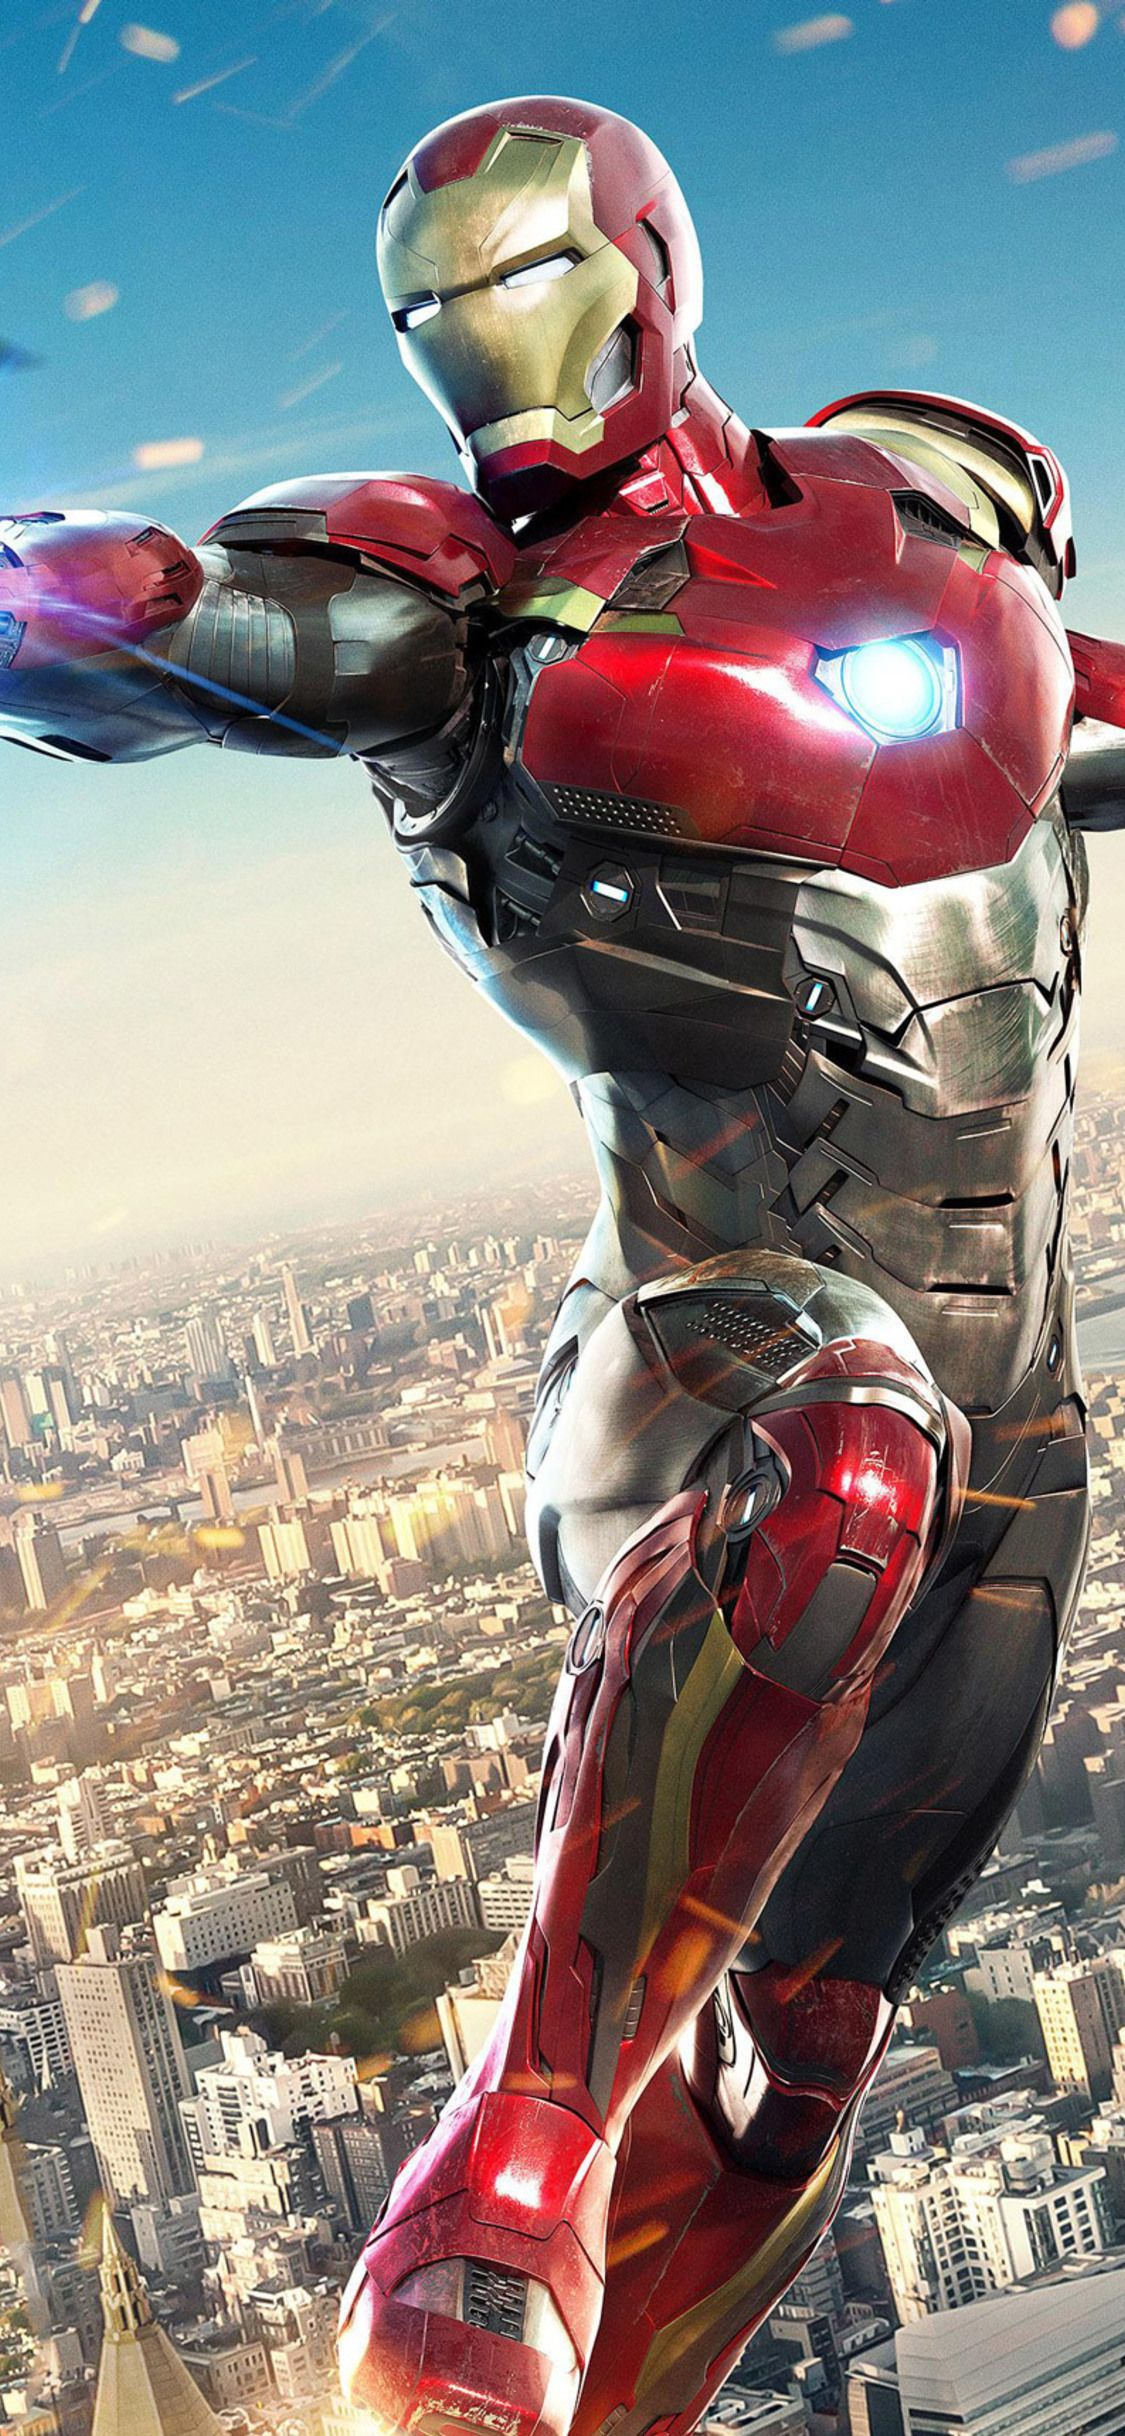 1125x2436 Iron Man And Spiderman In Spiderman Homecoming 4k Hd Iphone Xs Iphone 10 Iphone X Hd 4k Wallpapers Iron Man Hd Wallpaper Iron Man Iron Man Spiderman